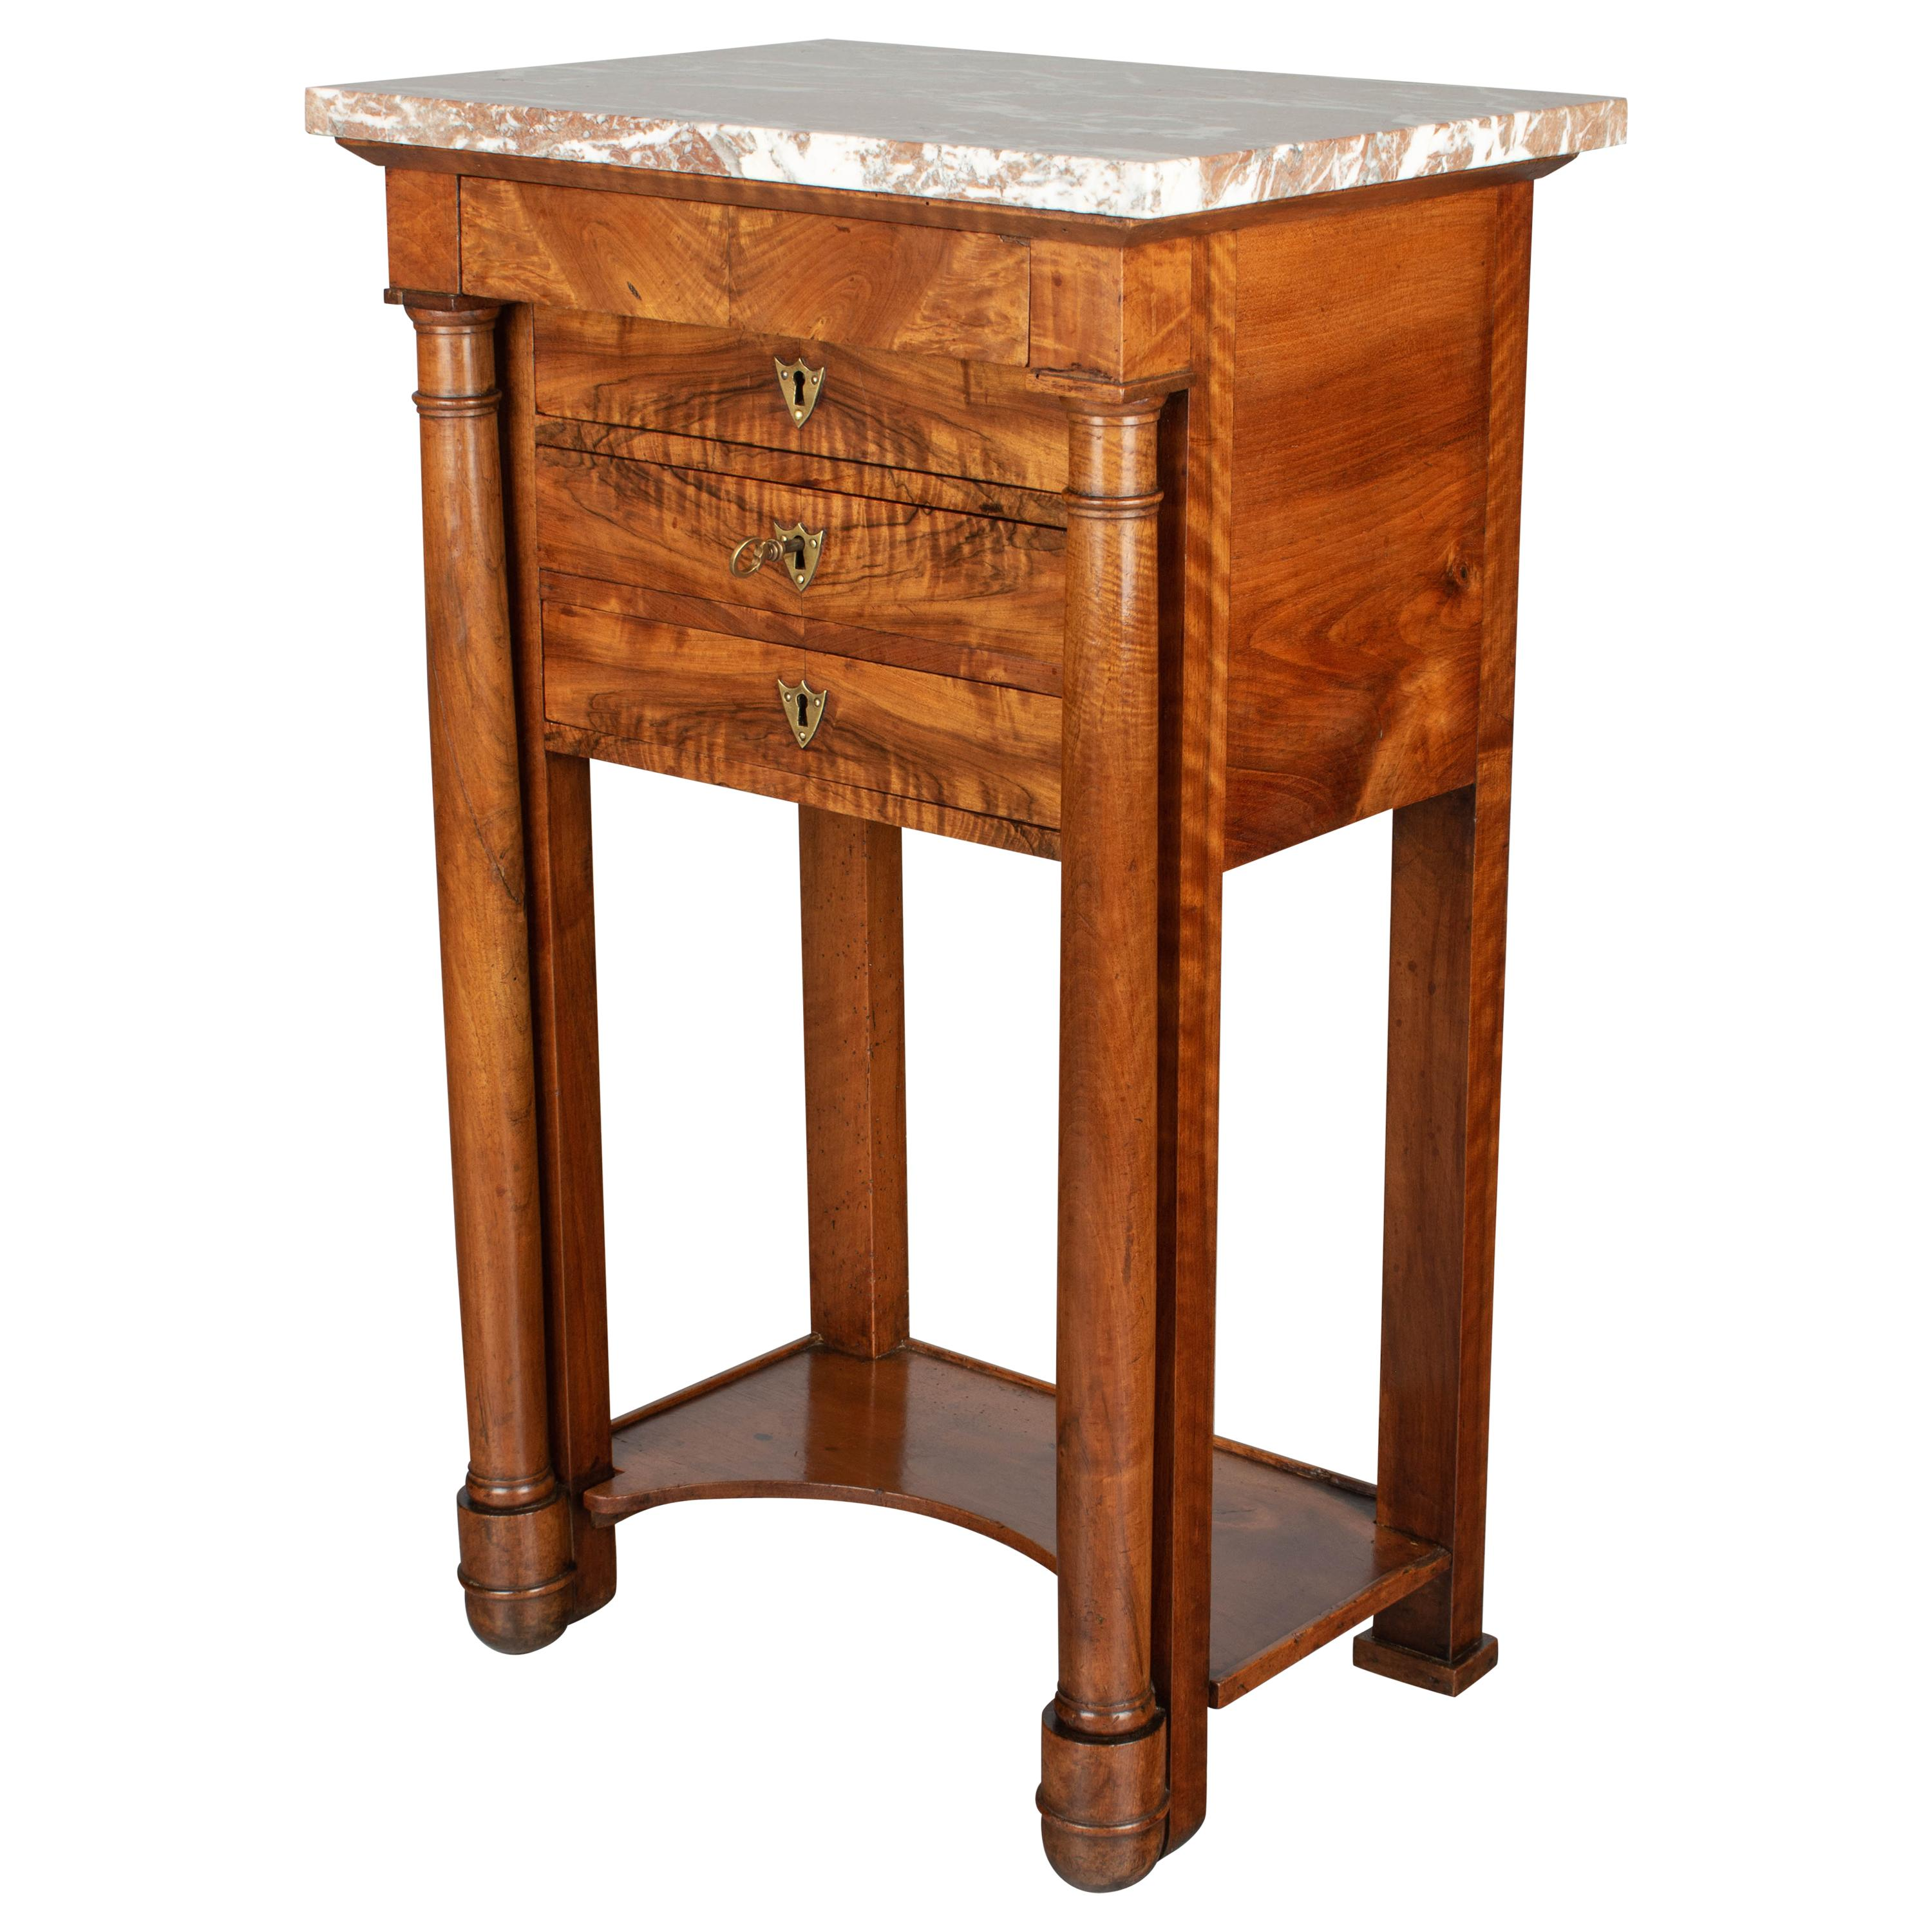 19th Century French Empire Period Walnut Side Table